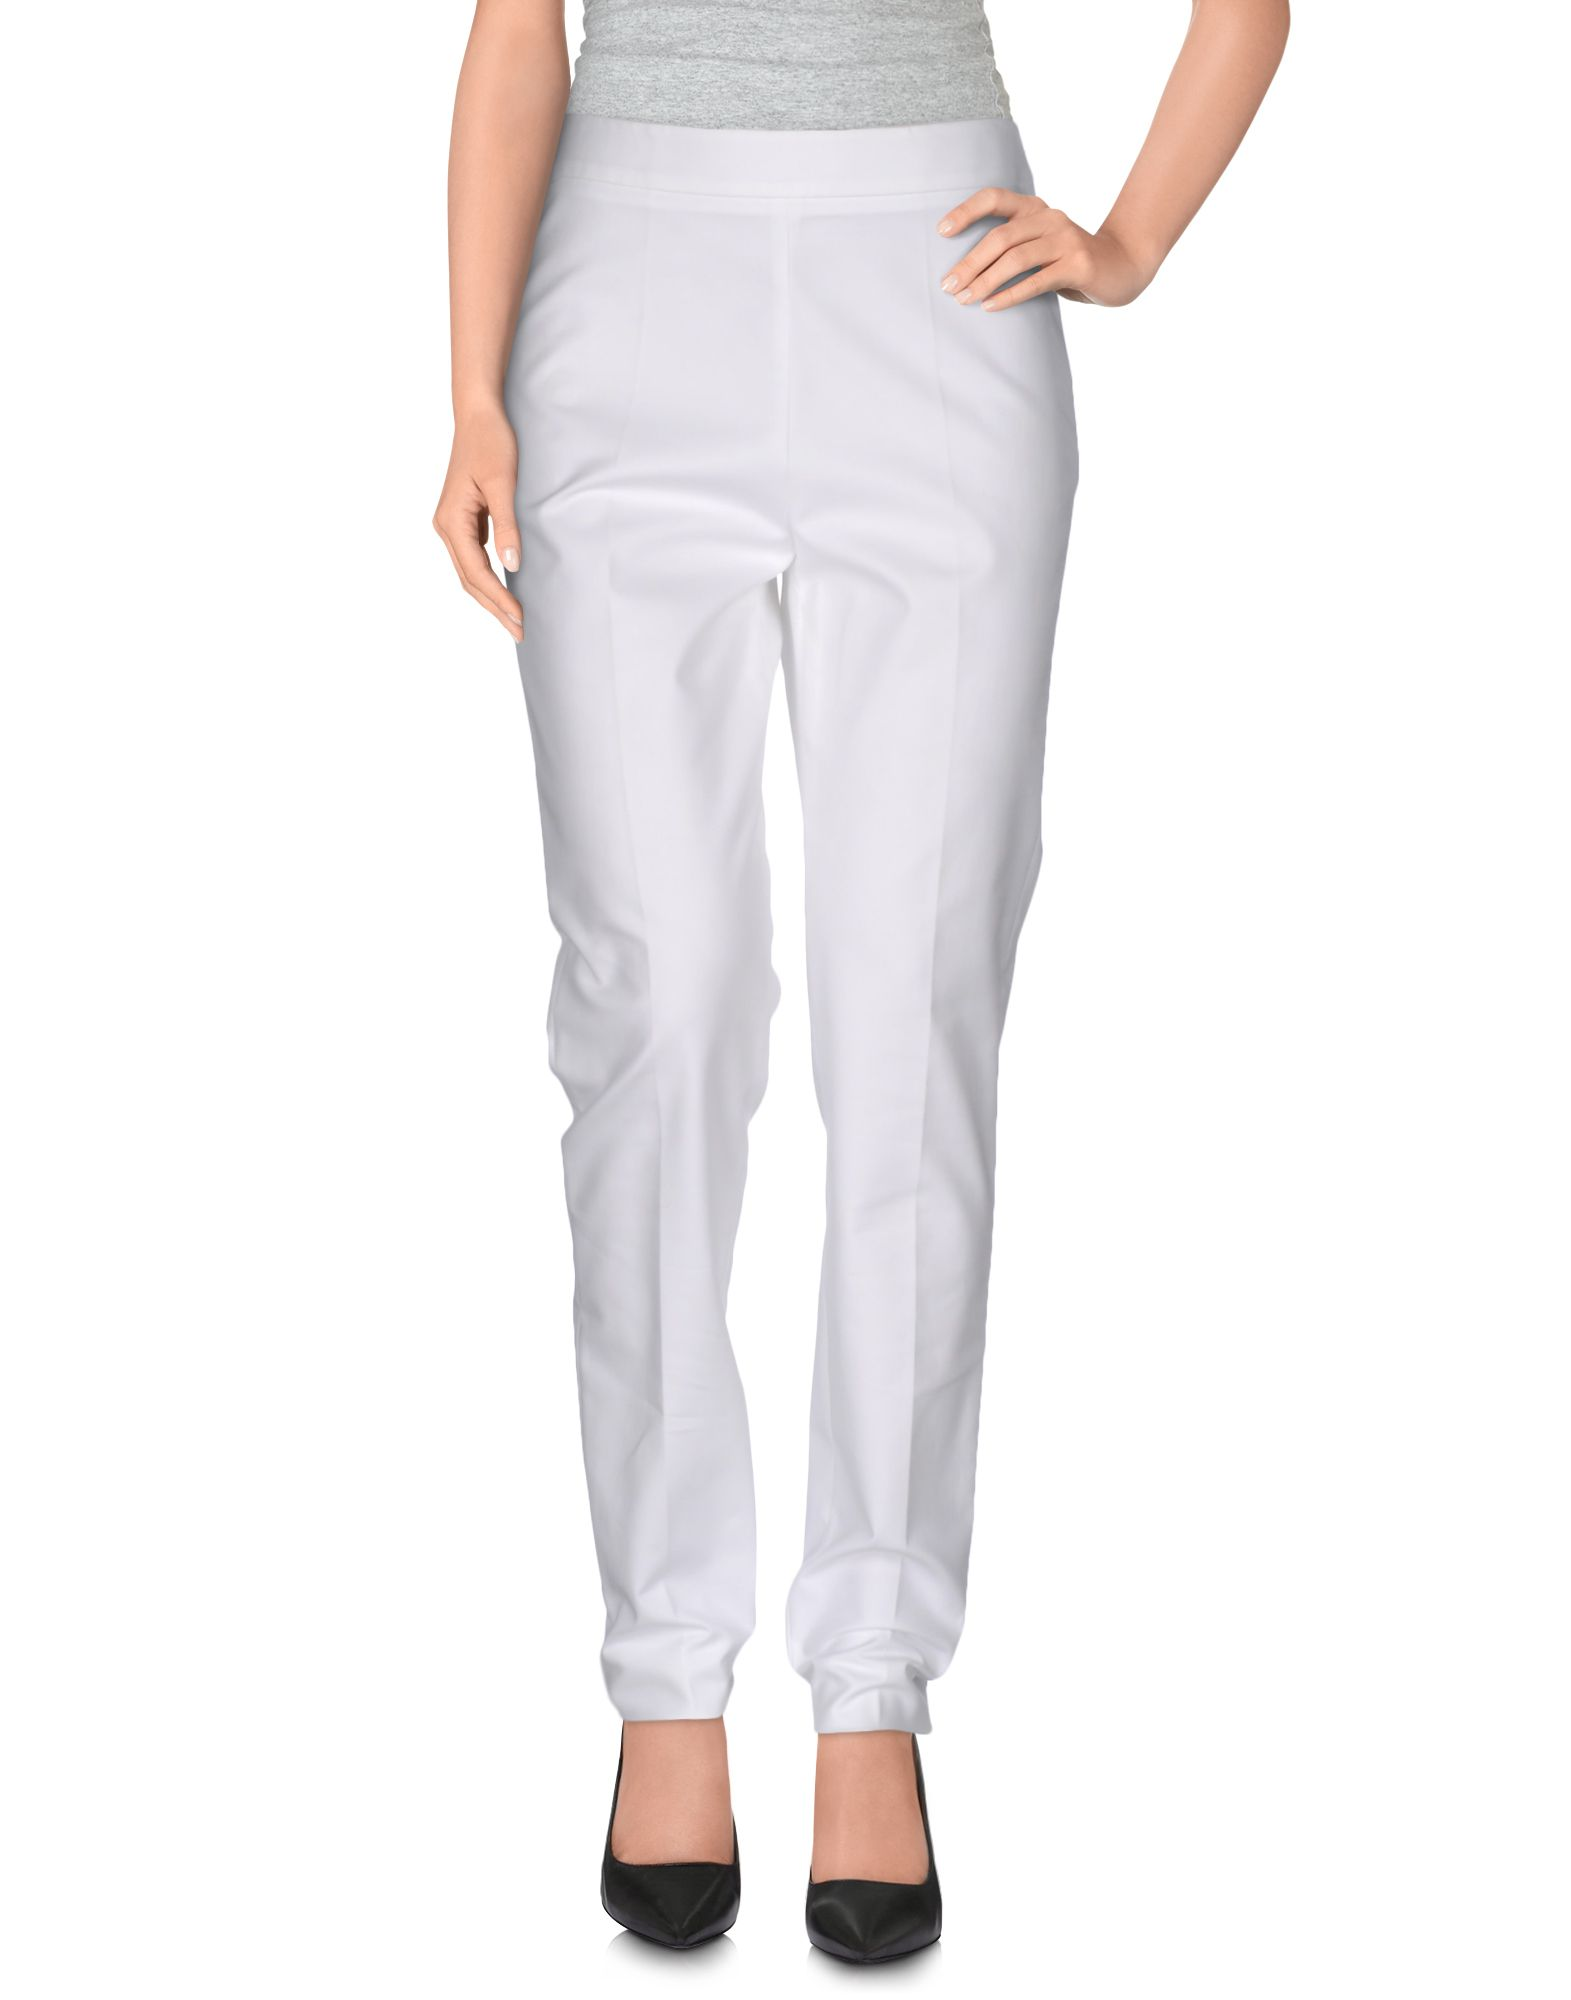 7007d2367cc9 Moschino Casual Trouser - Women Moschino Casual Trousers online on ...